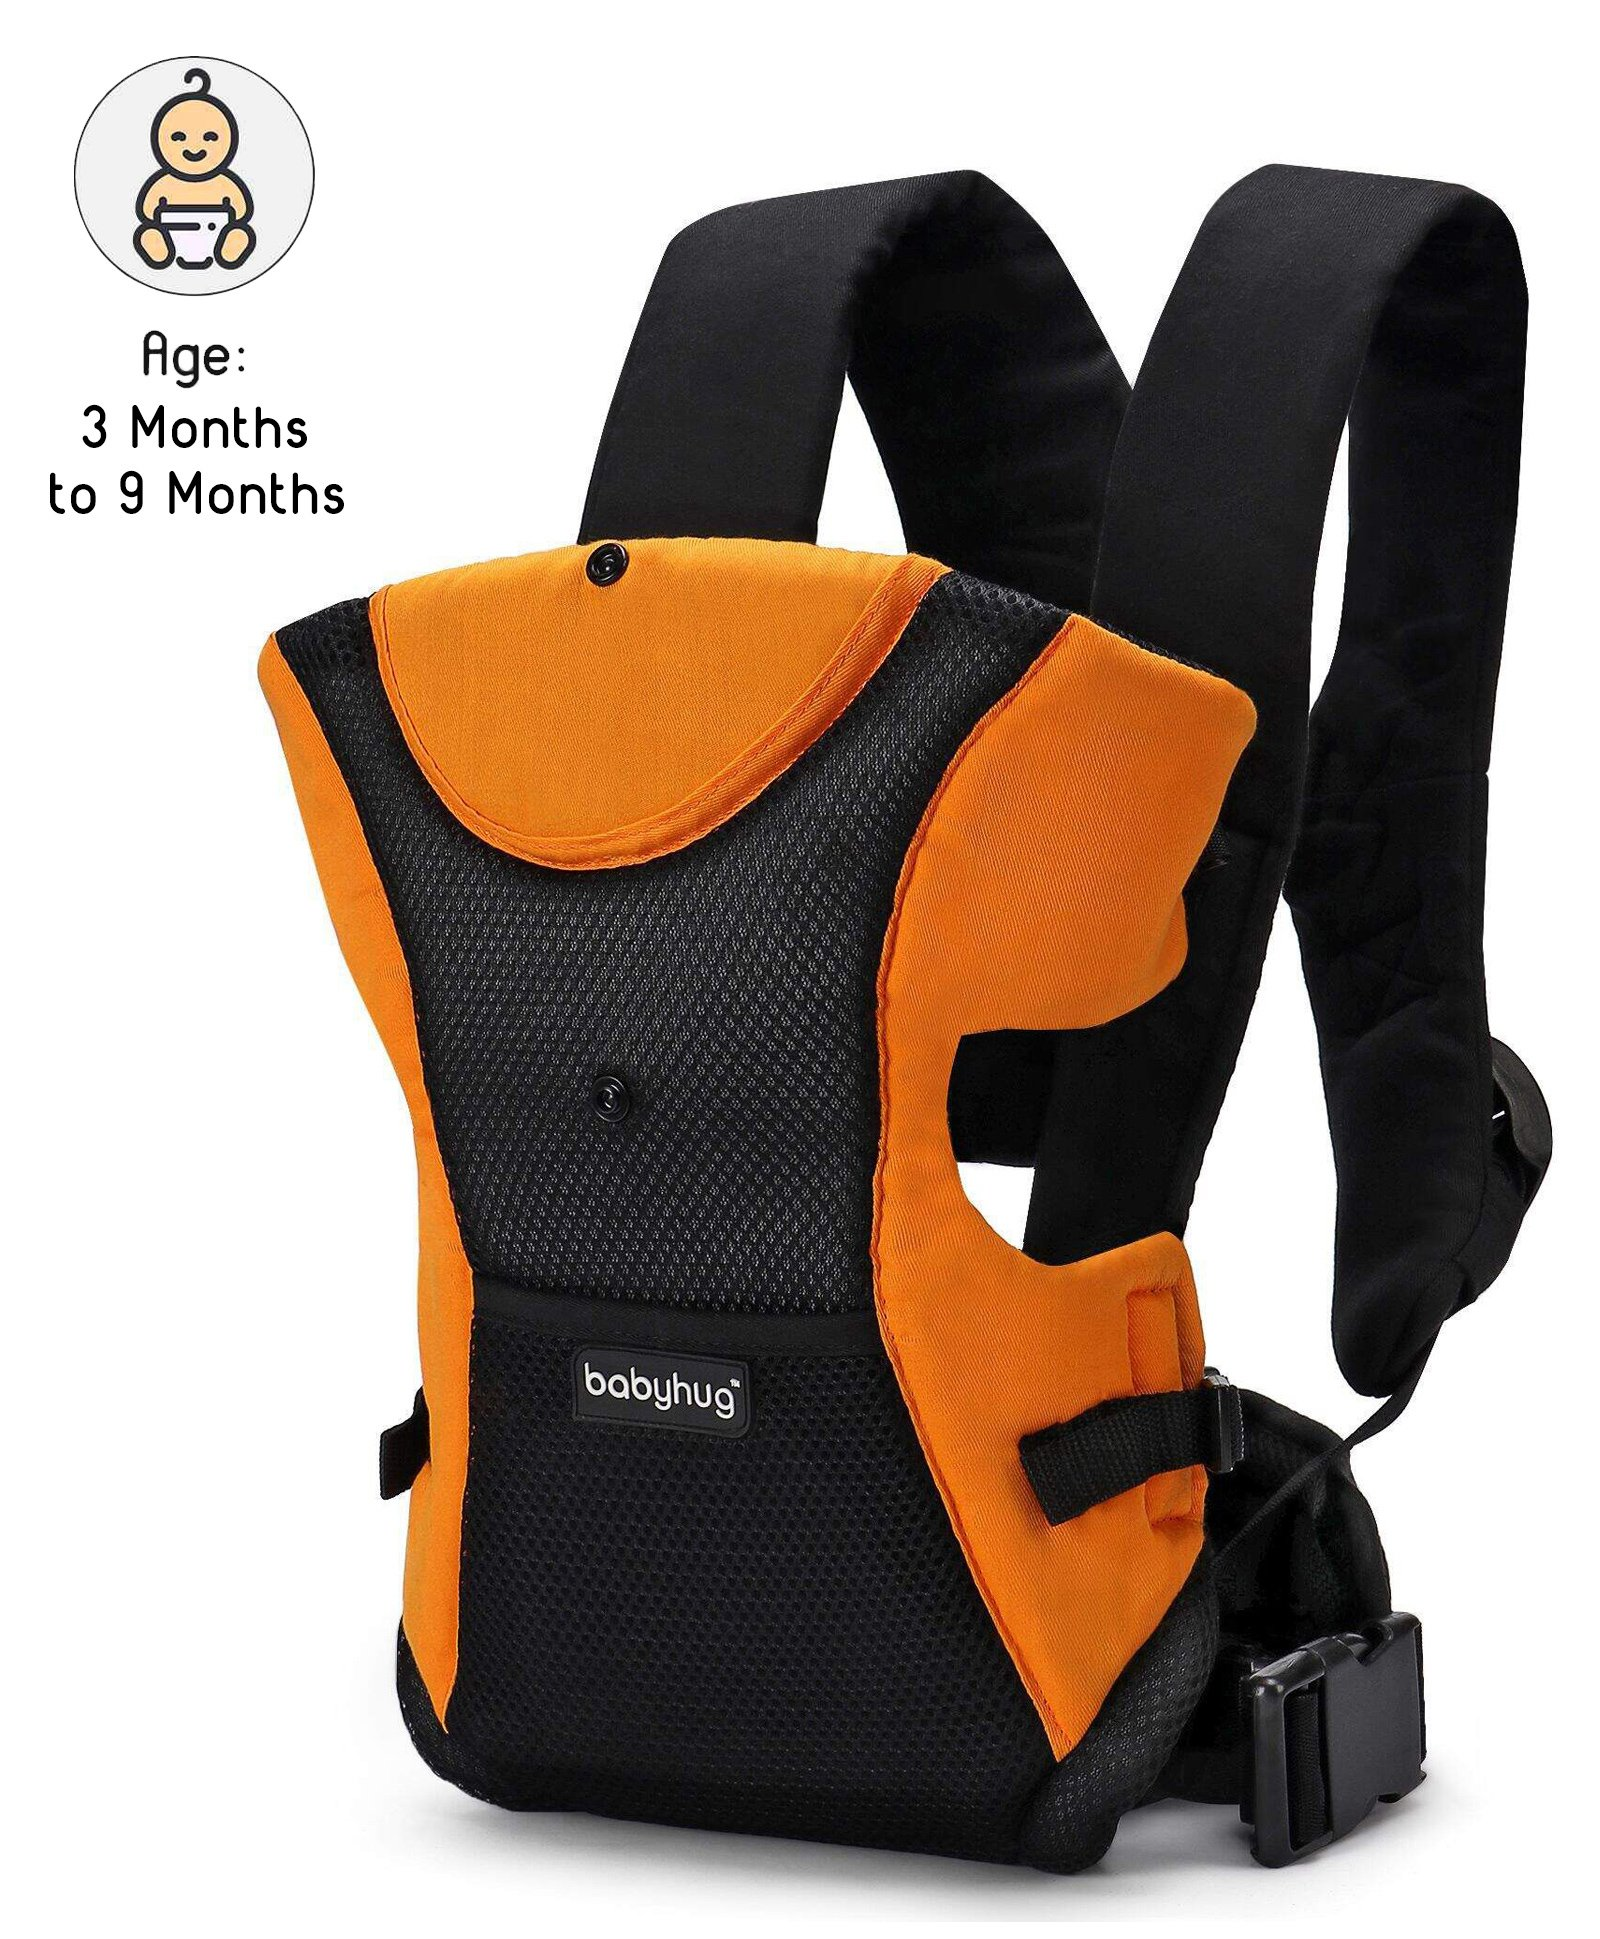 Babyhug Kangaroo Pouch 3 Way Baby Carrier - Orange & Black